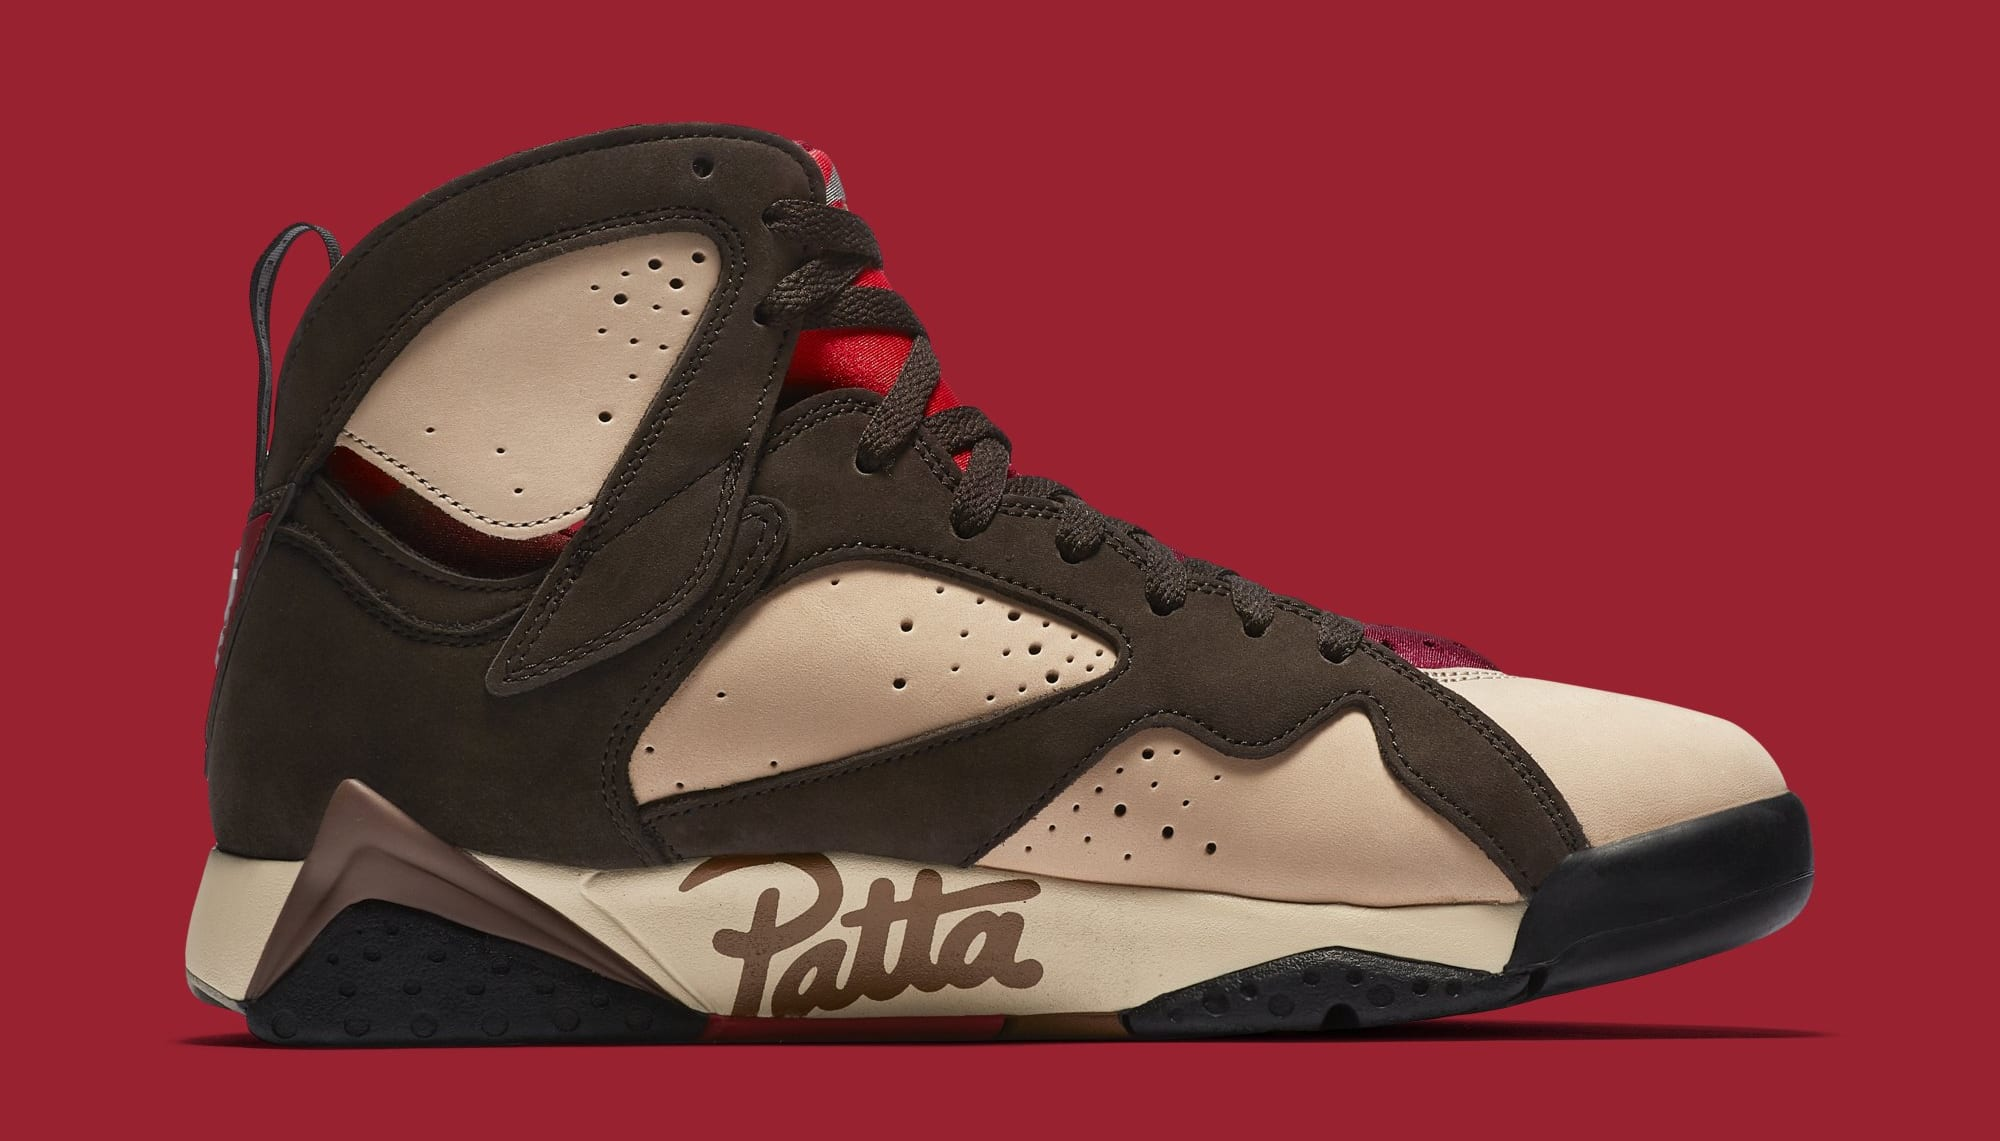 Patta x Air Jordan 7 AT3375-200 (Medial)